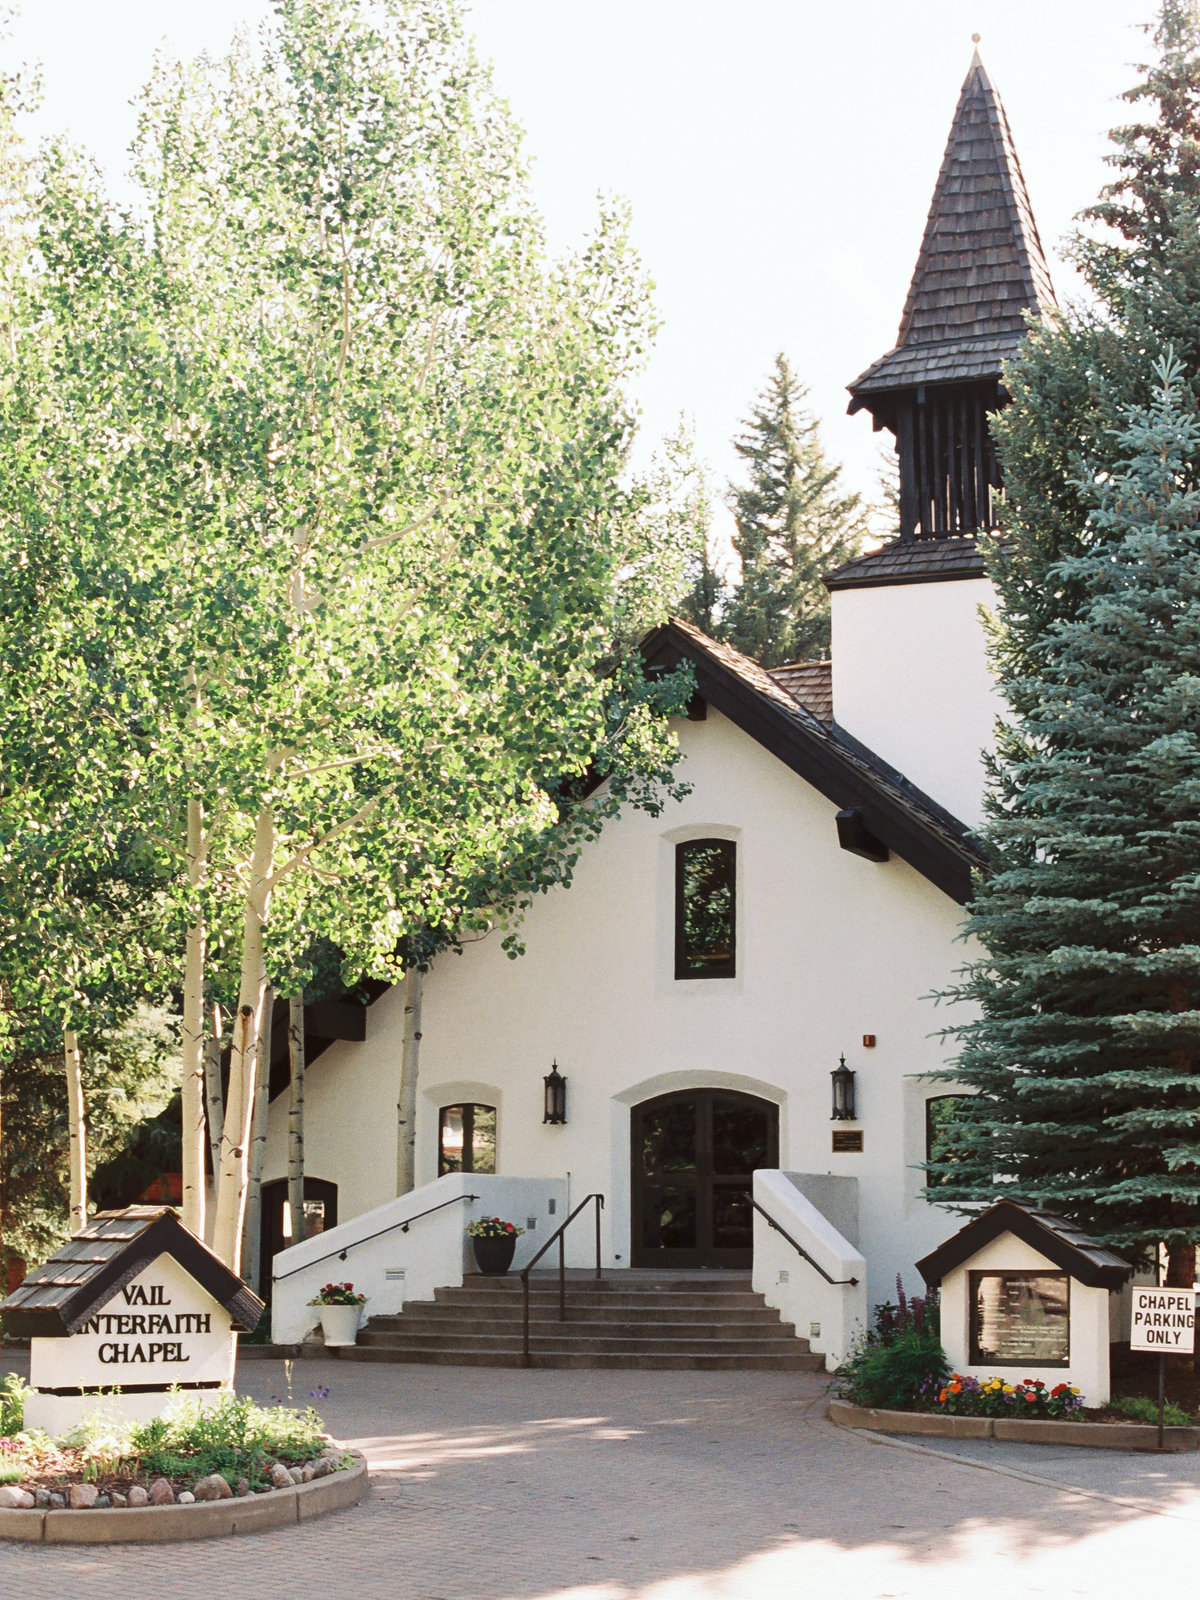 Vail Interfaith Chapel Mountain Wedding Photographer